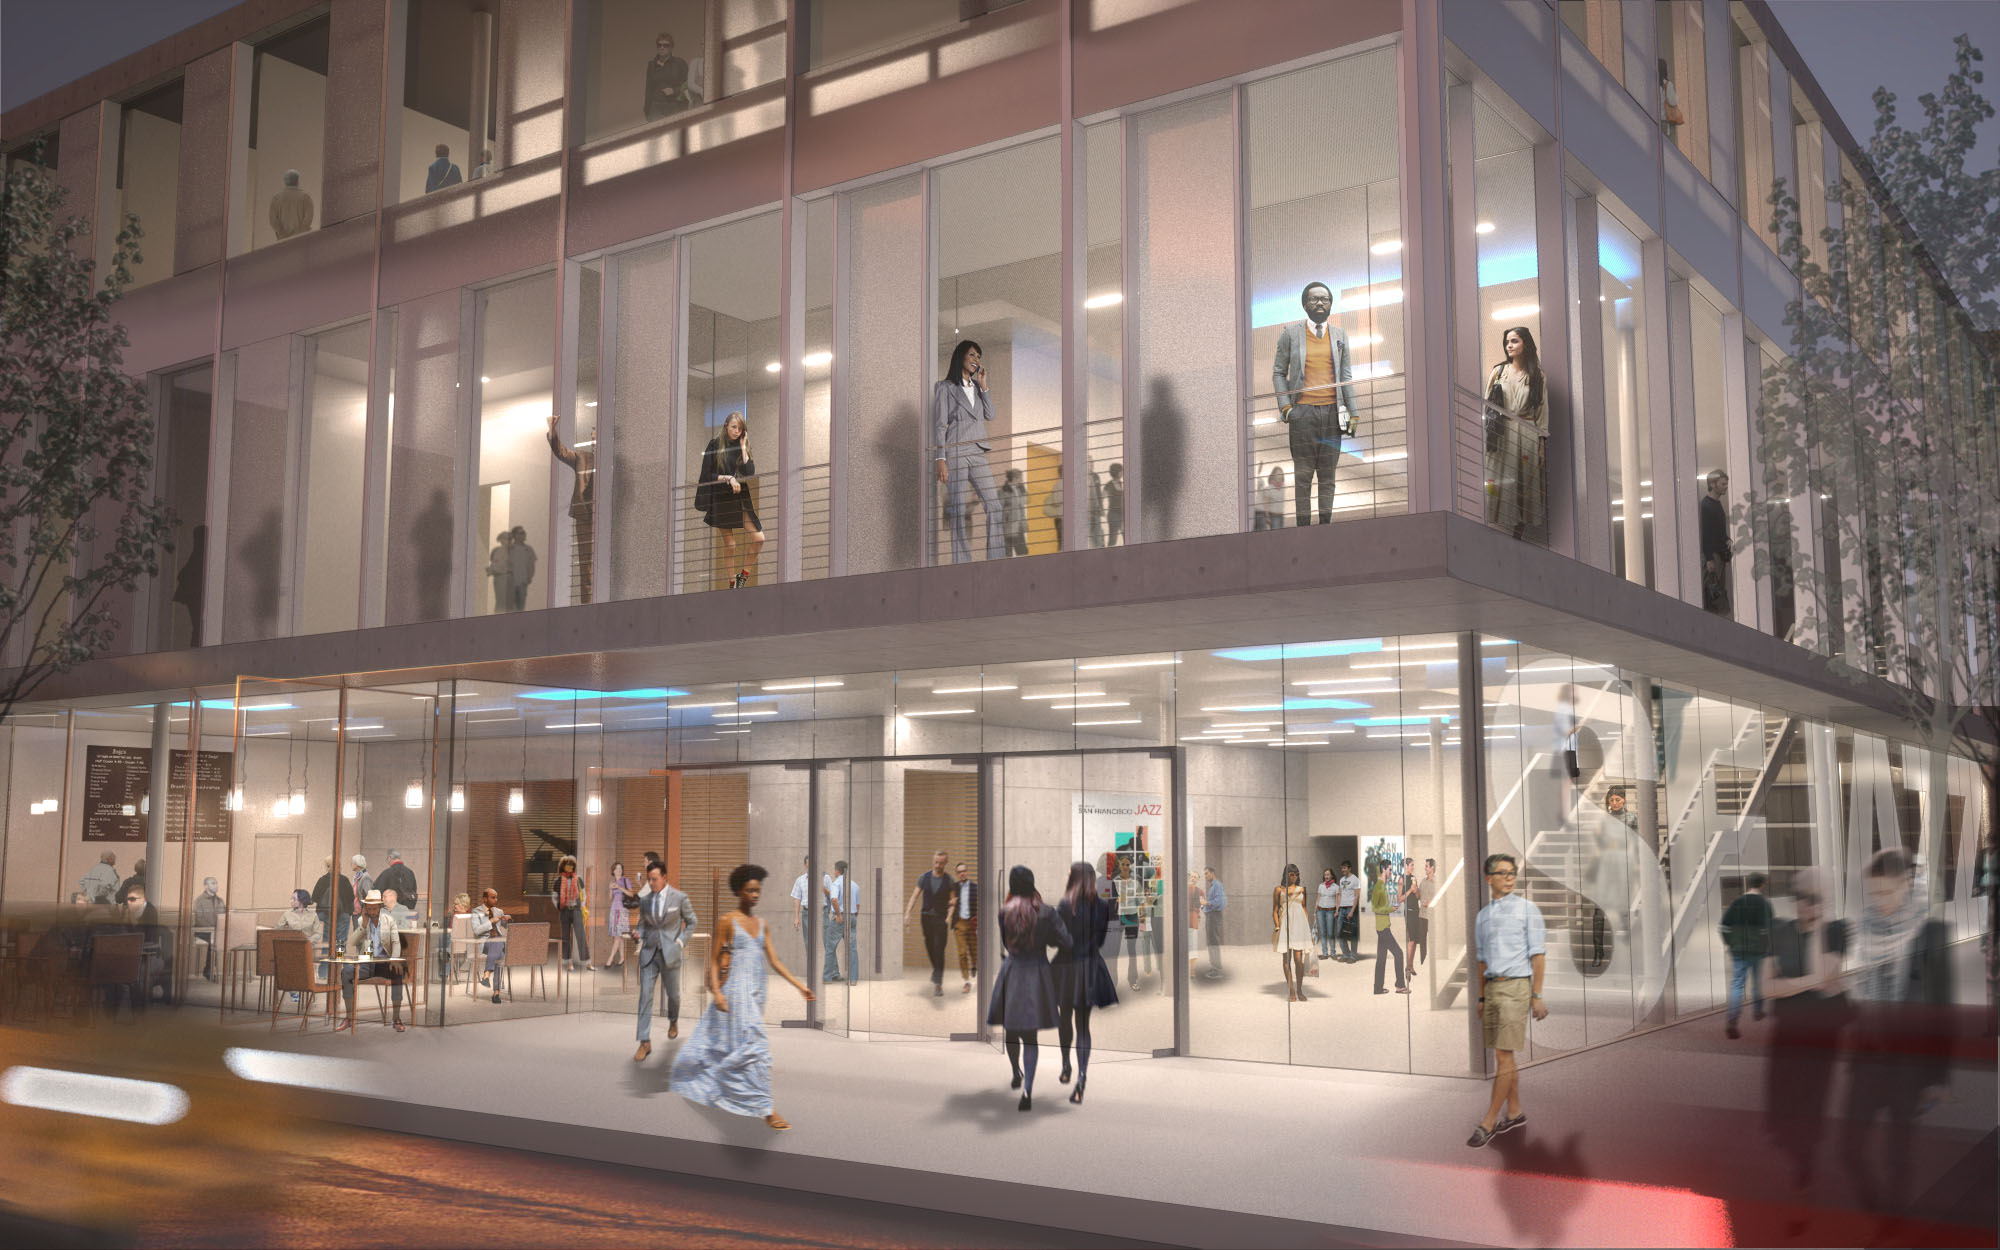 News Sfjazz Builds A Home The International Review Of Music